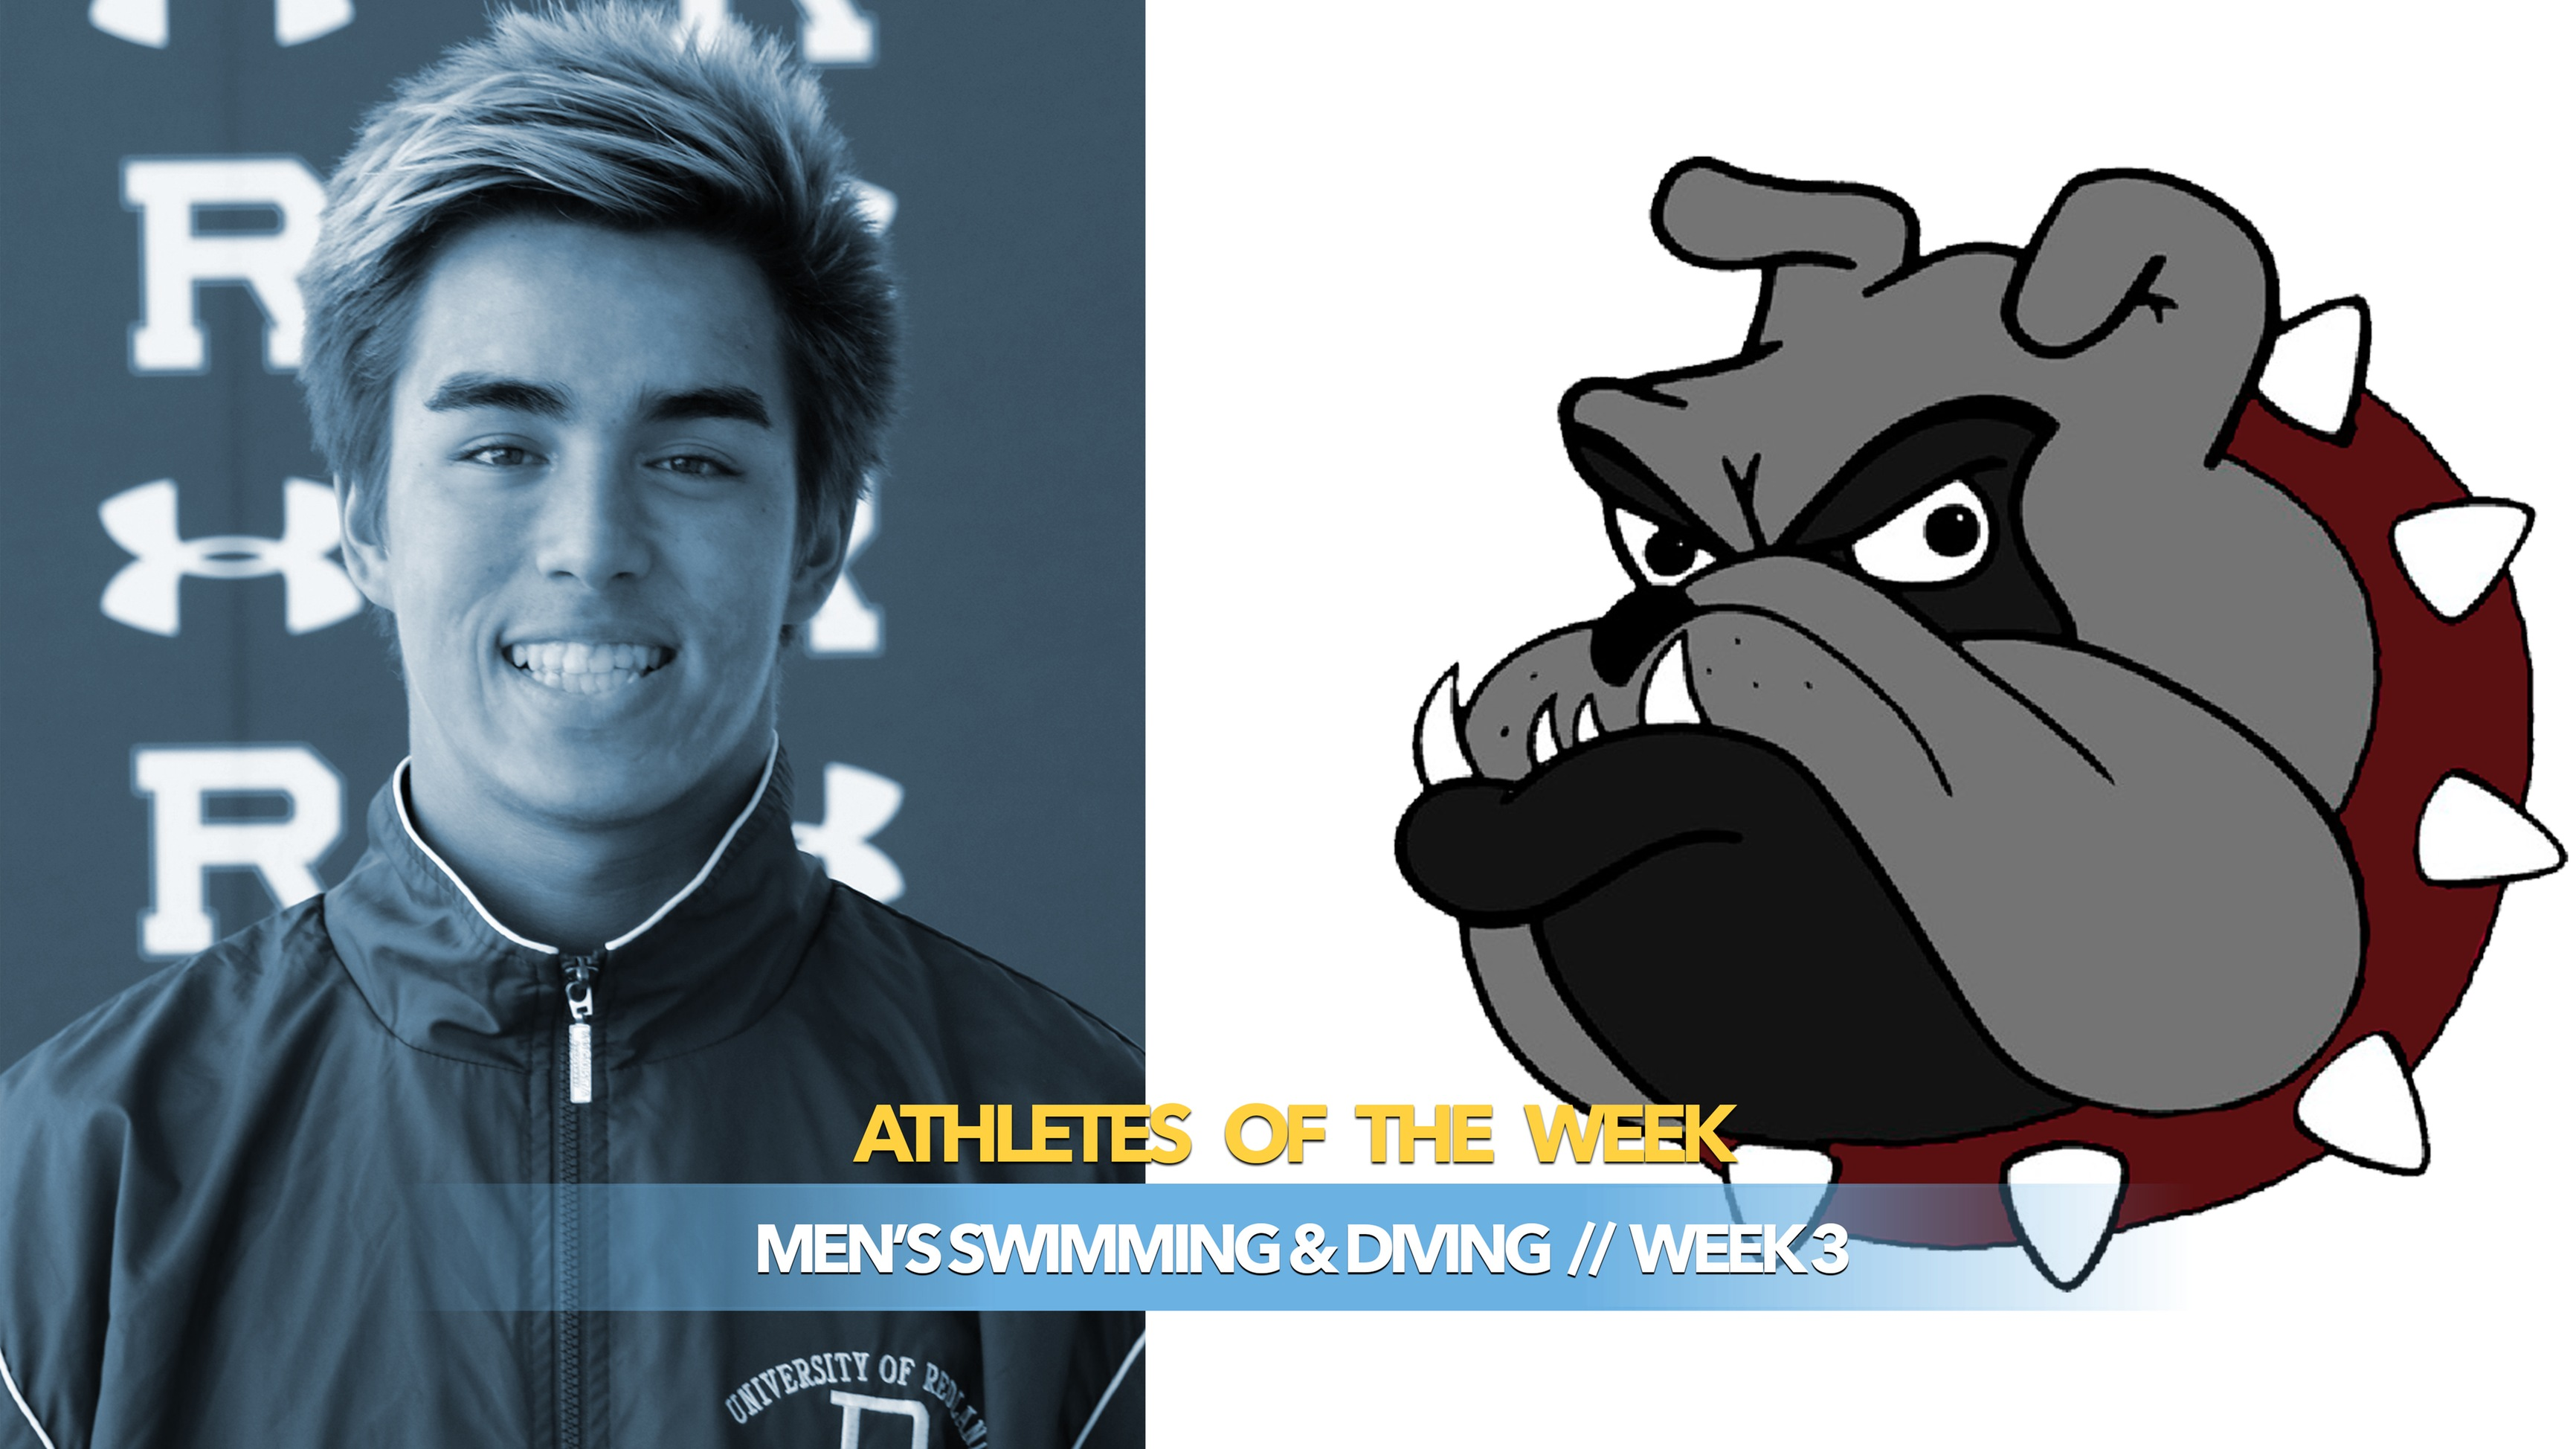 Men's Swimming & Diving Athlete of the Week: November 4, 2019